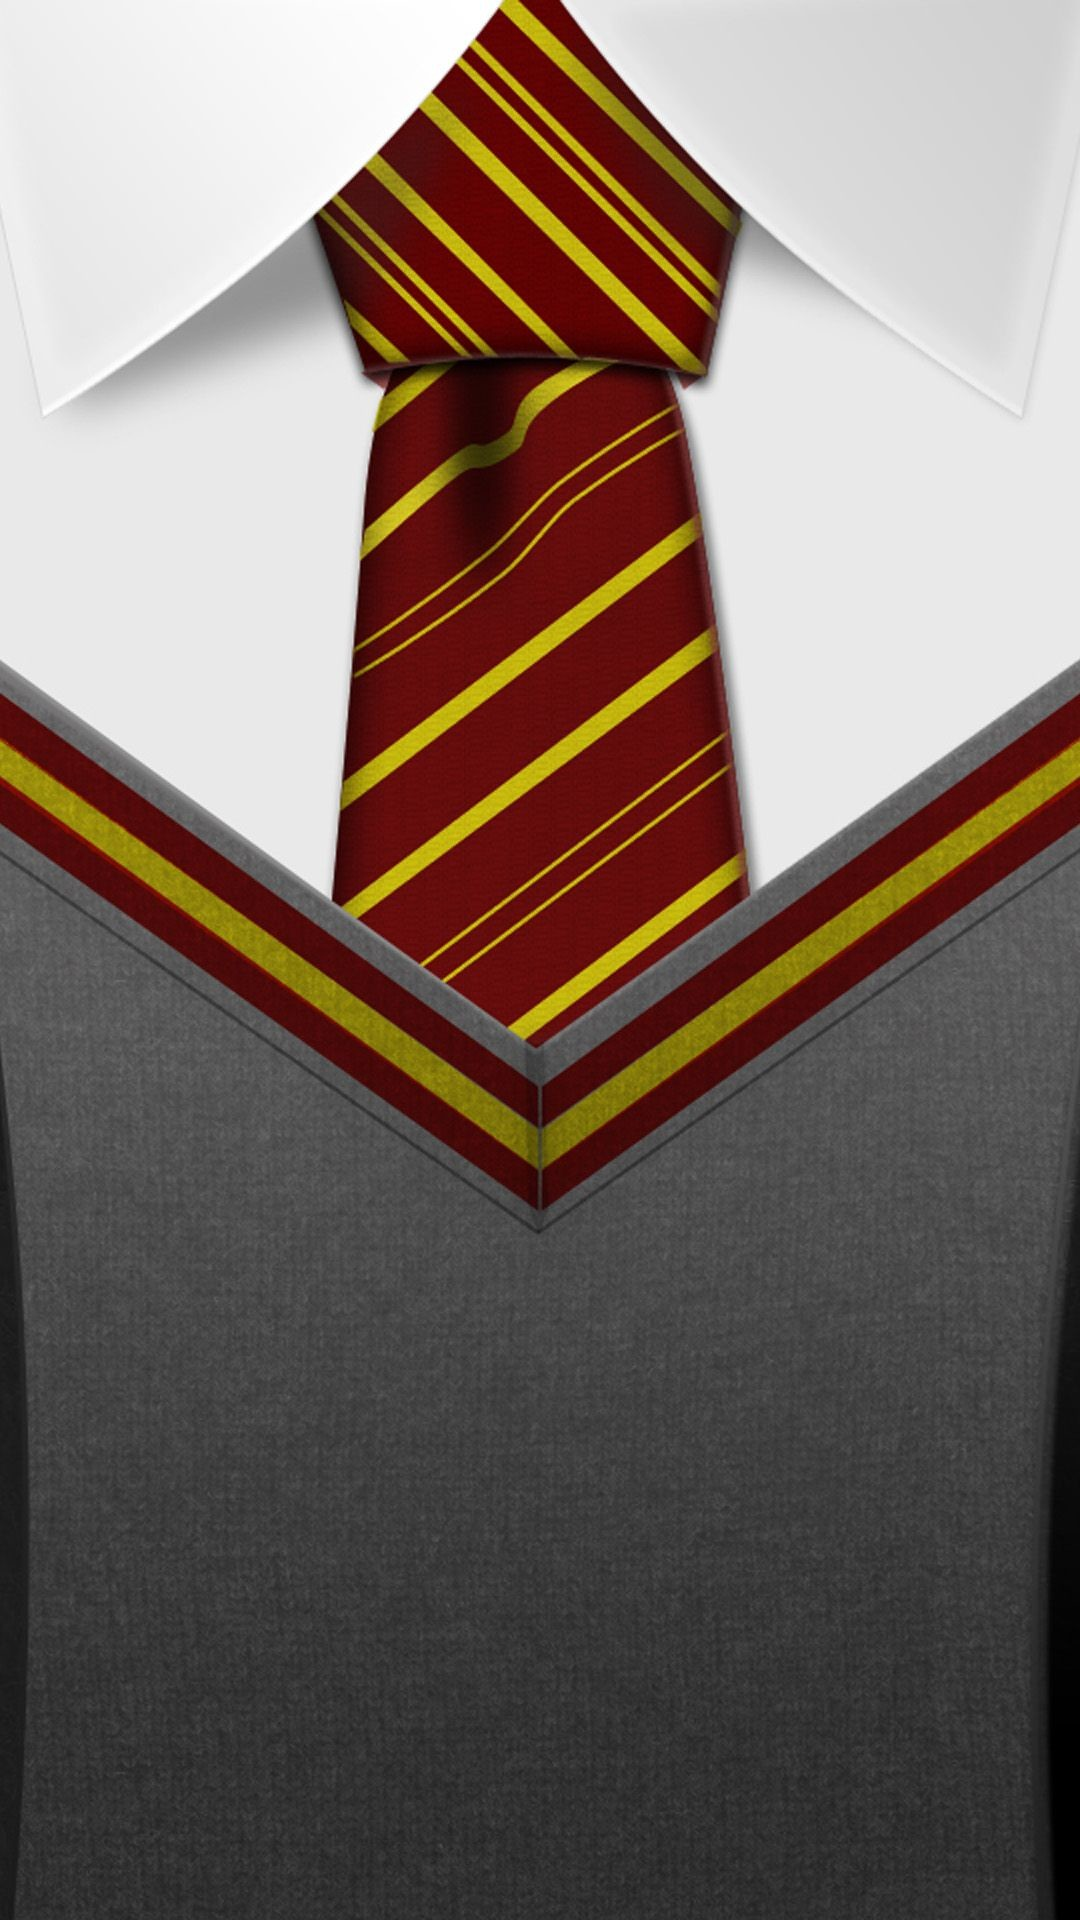 Res: 1080x1920, Harry Potter Gryffindor Tie - Tap to see more amazing Harry Potter wallpaper!  @mobile9